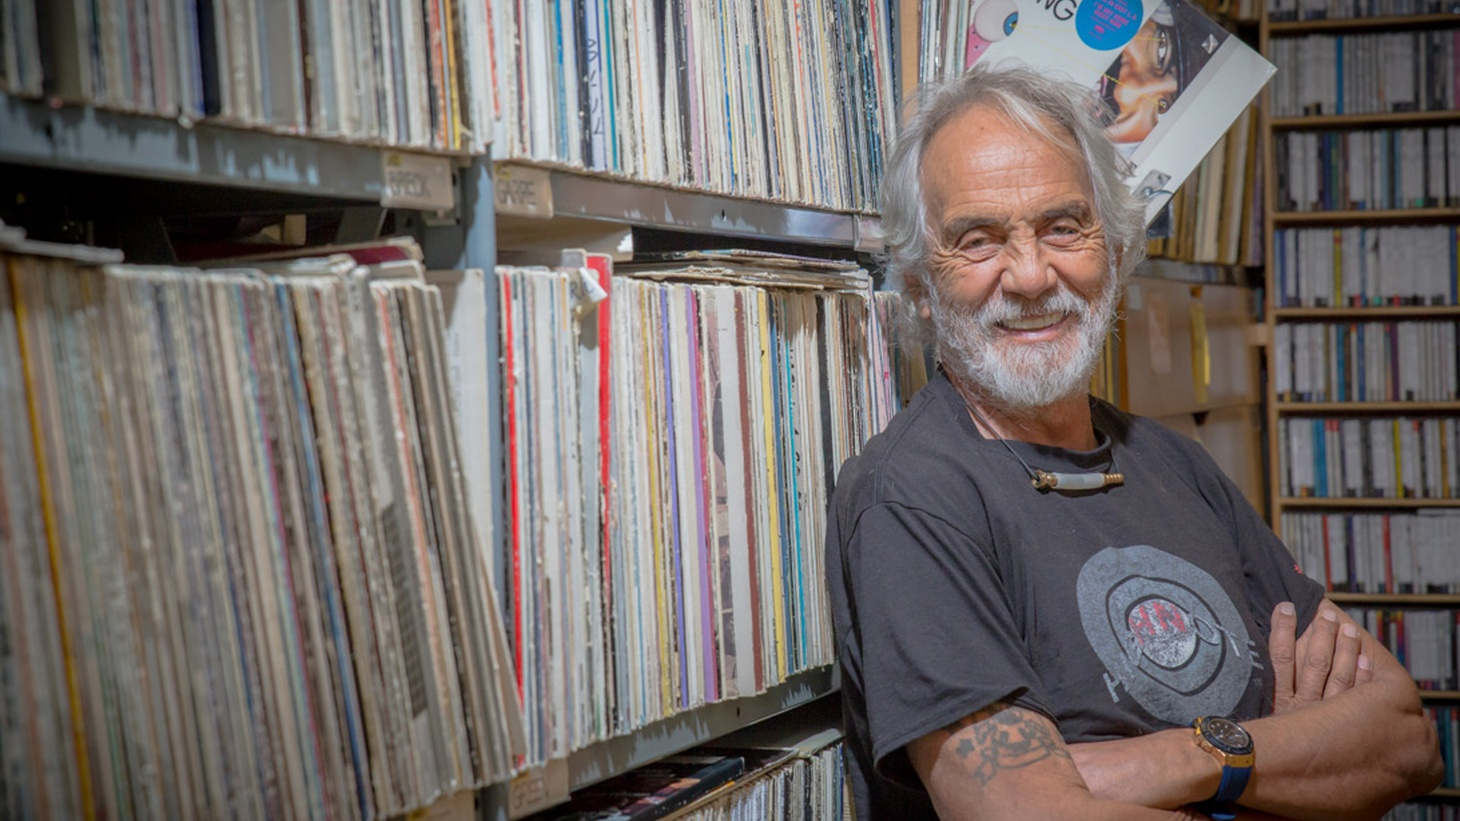 """Before Tommy Chong joined up with Cheech Marin to form Cheech and Chong, he found fame as a musician. He tells us how Elvis changed his life, how Marvin Gaye's """"What's Going On"""" was an inspiration for the incredibly popular comedy duo, and much more."""